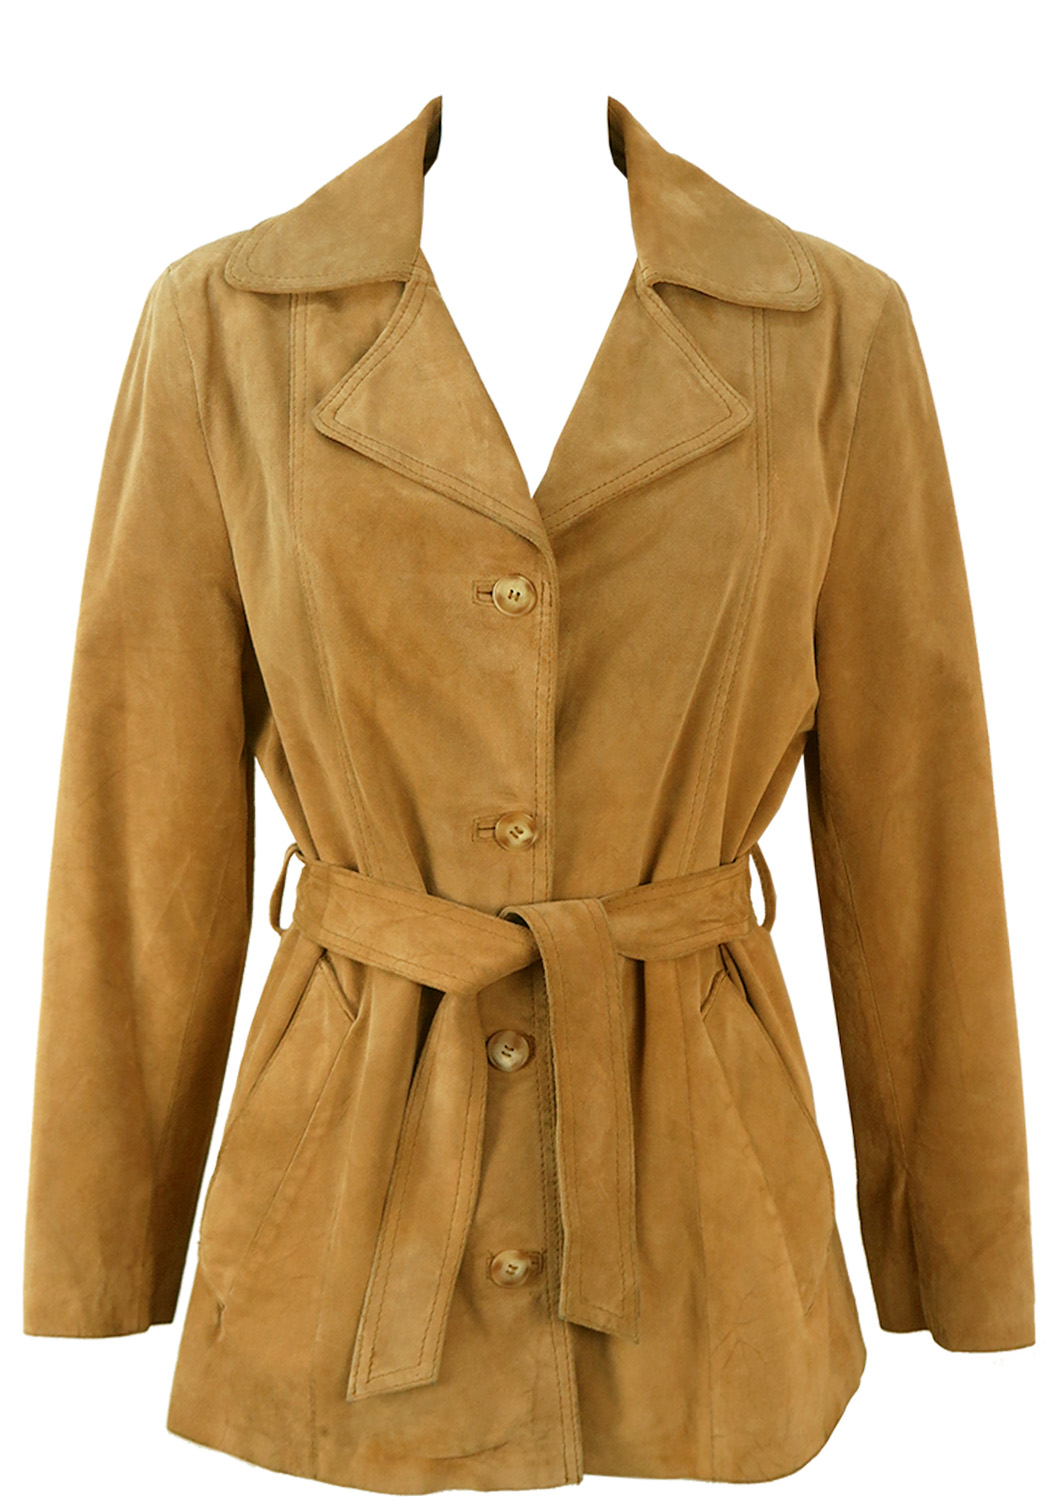 Light Tan Suede Belted Jacket – M/L – Reign Vintage